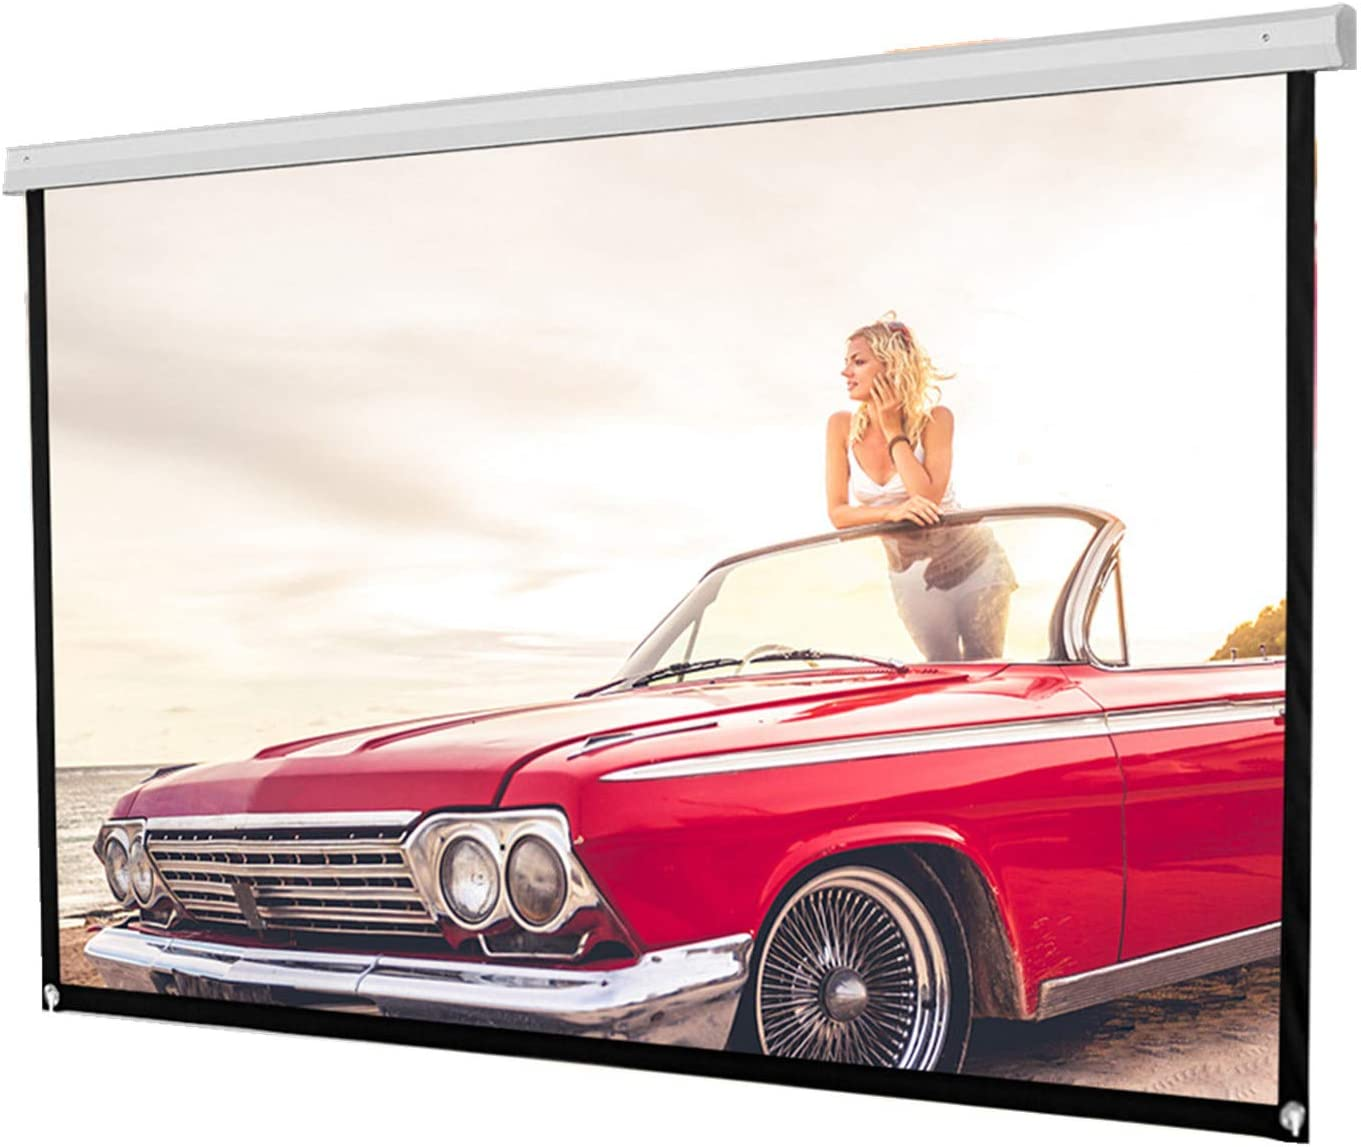 Projector Screen 72 inch 16:9 HD Foldable Anti-Crease Portable Projection Movies Screen for Home Theater Outdoor Indoor